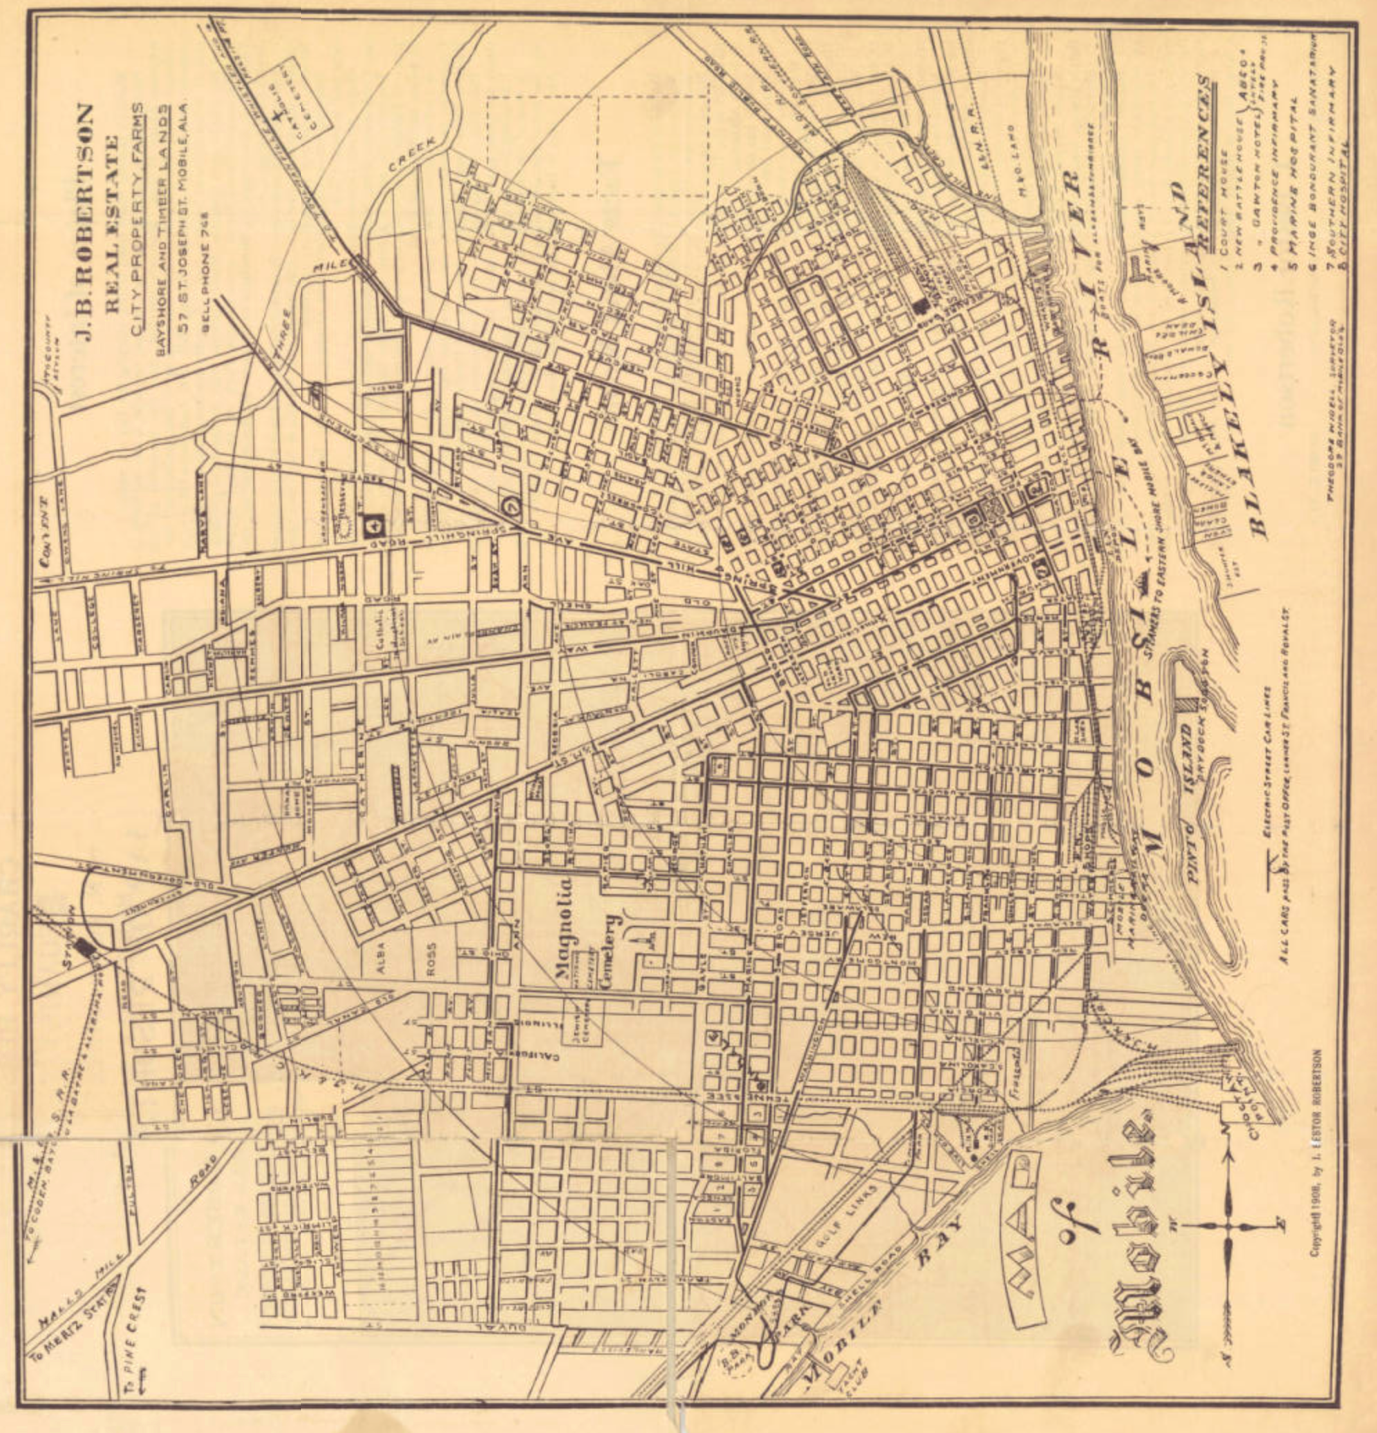 Mobile in 1908, The older sections of Midtown are fully developed